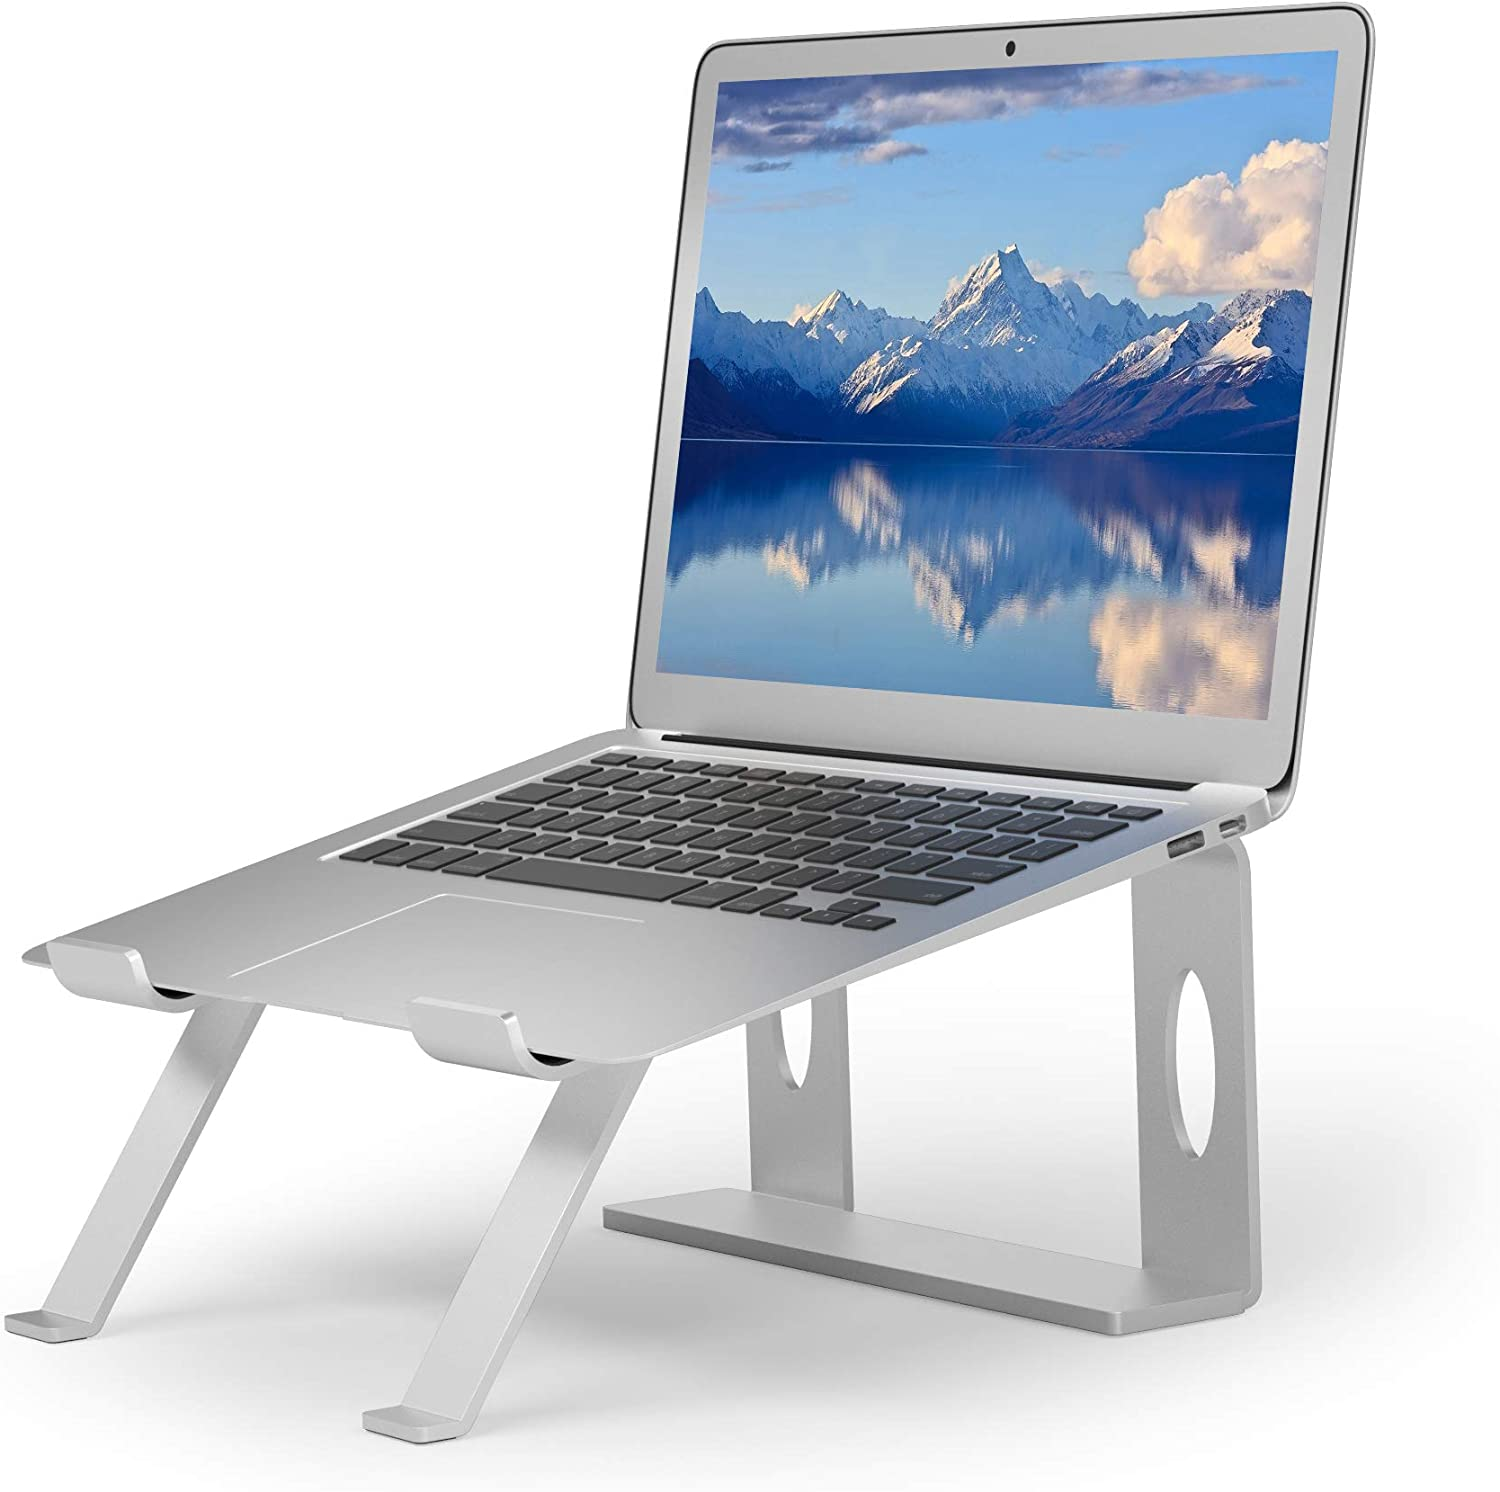 Quality inspection Laptop store Stand for Desk NEARPOW Computer Ex with